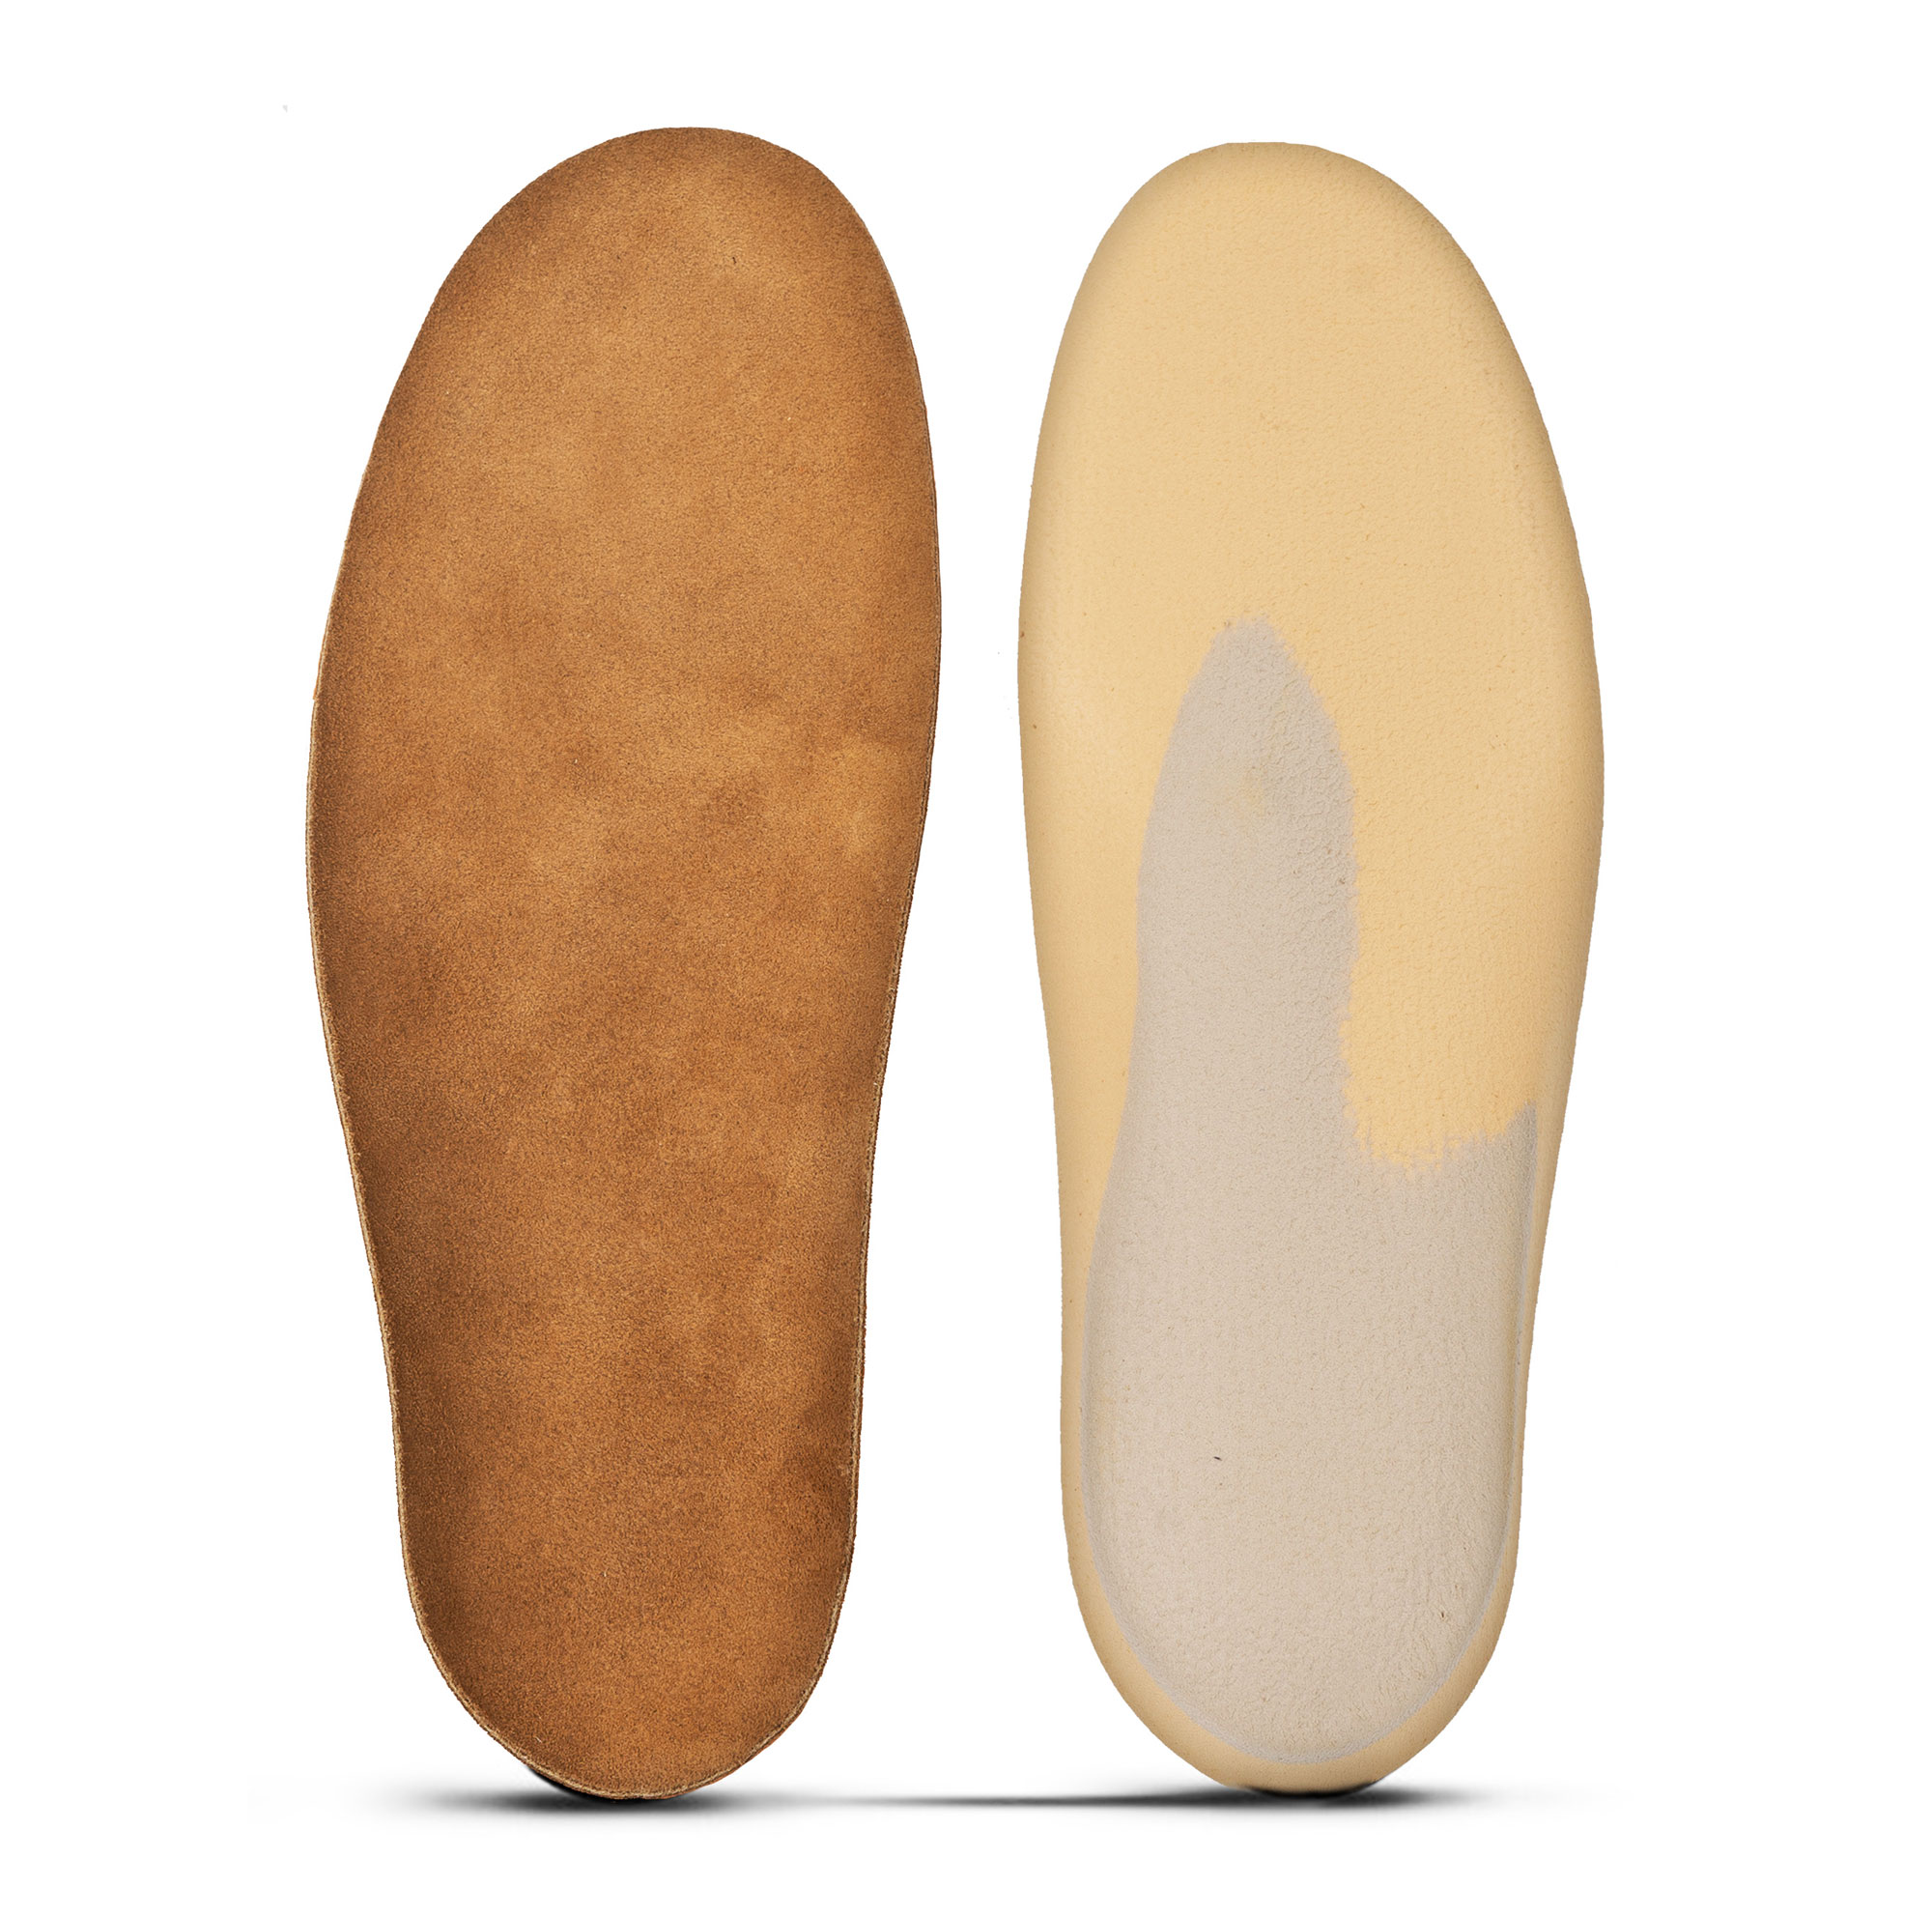 even-keel-custom-insoles-tan-suede-soft-base-flat-lay.jpg